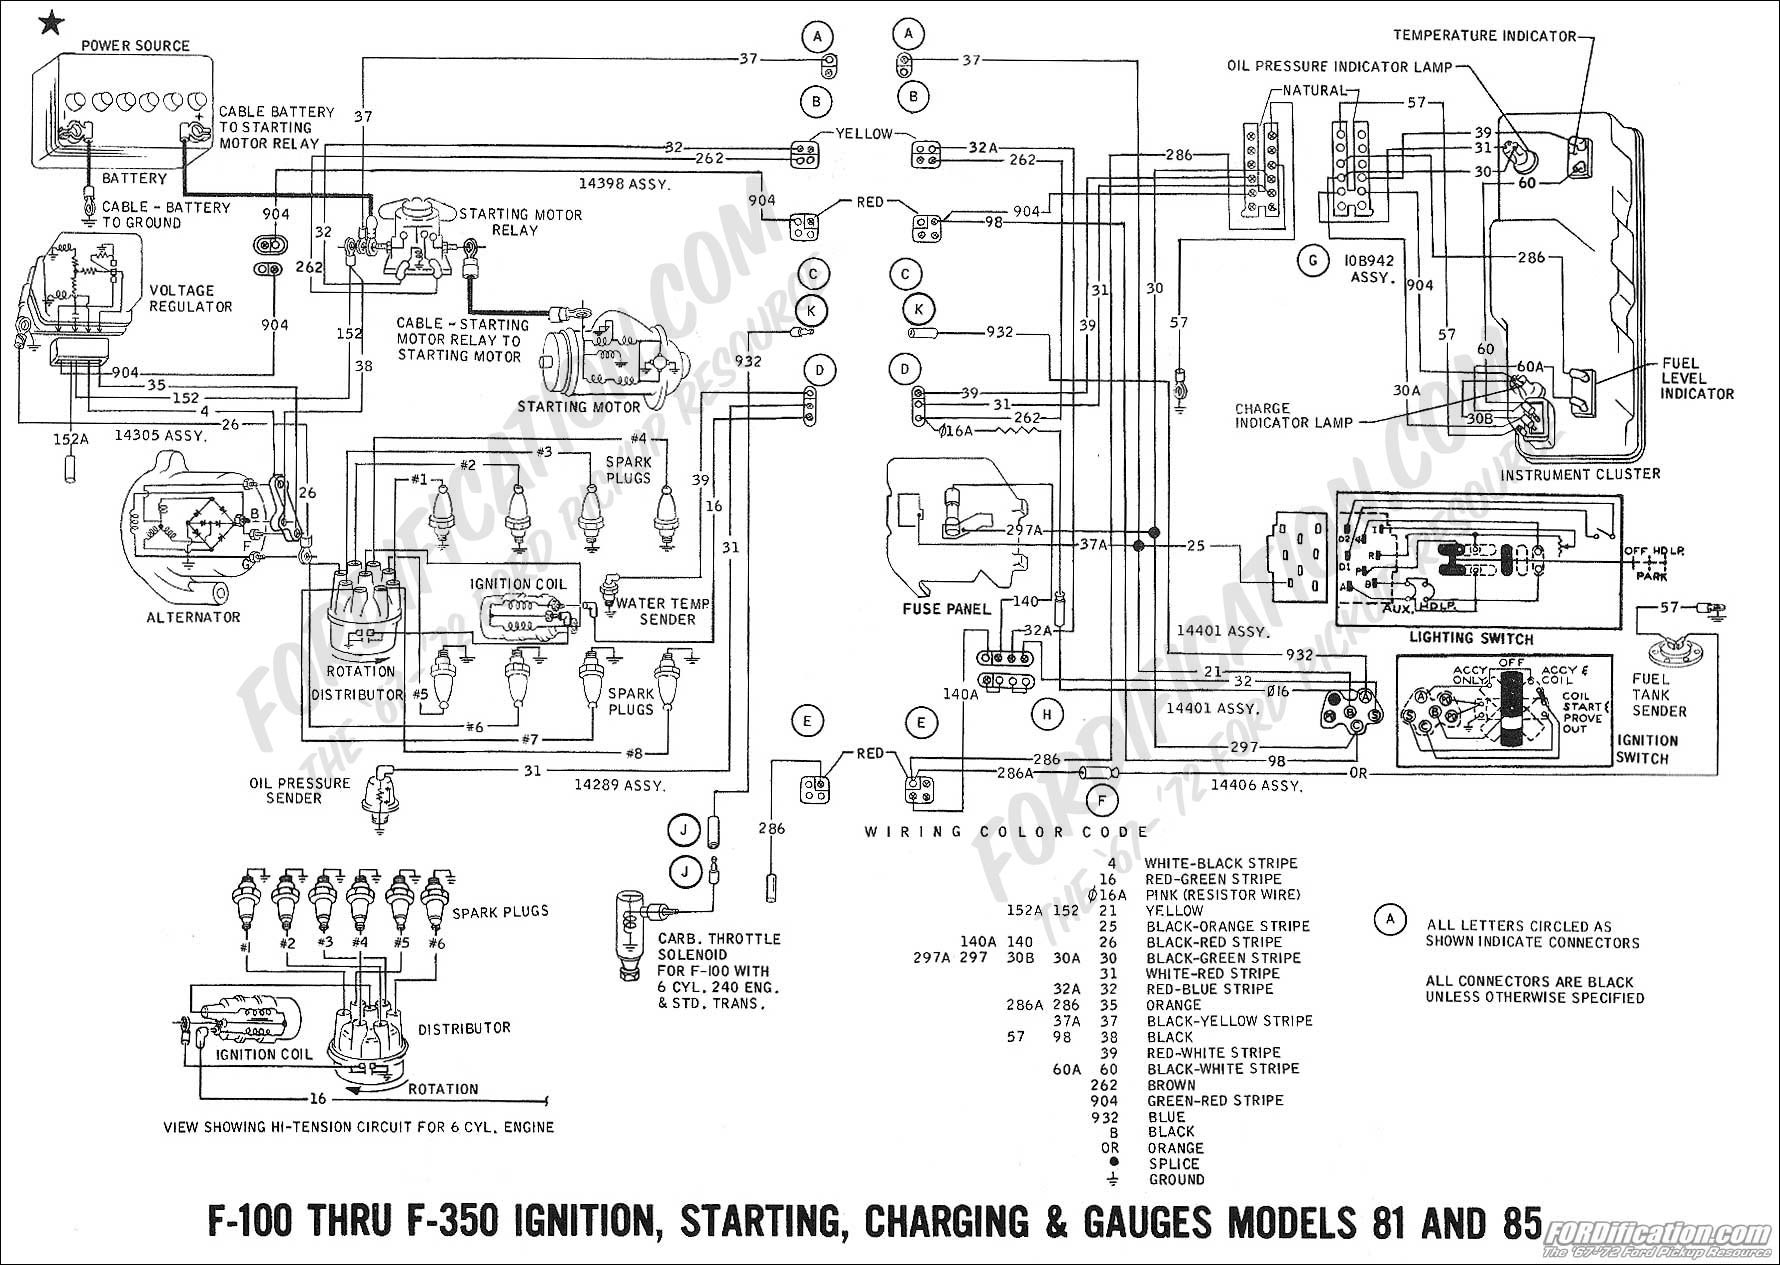 Charging System Wiring Diagram ford Charging System Wiring Diagram Further 1970 ford Truck Wiring Of Charging System Wiring Diagram